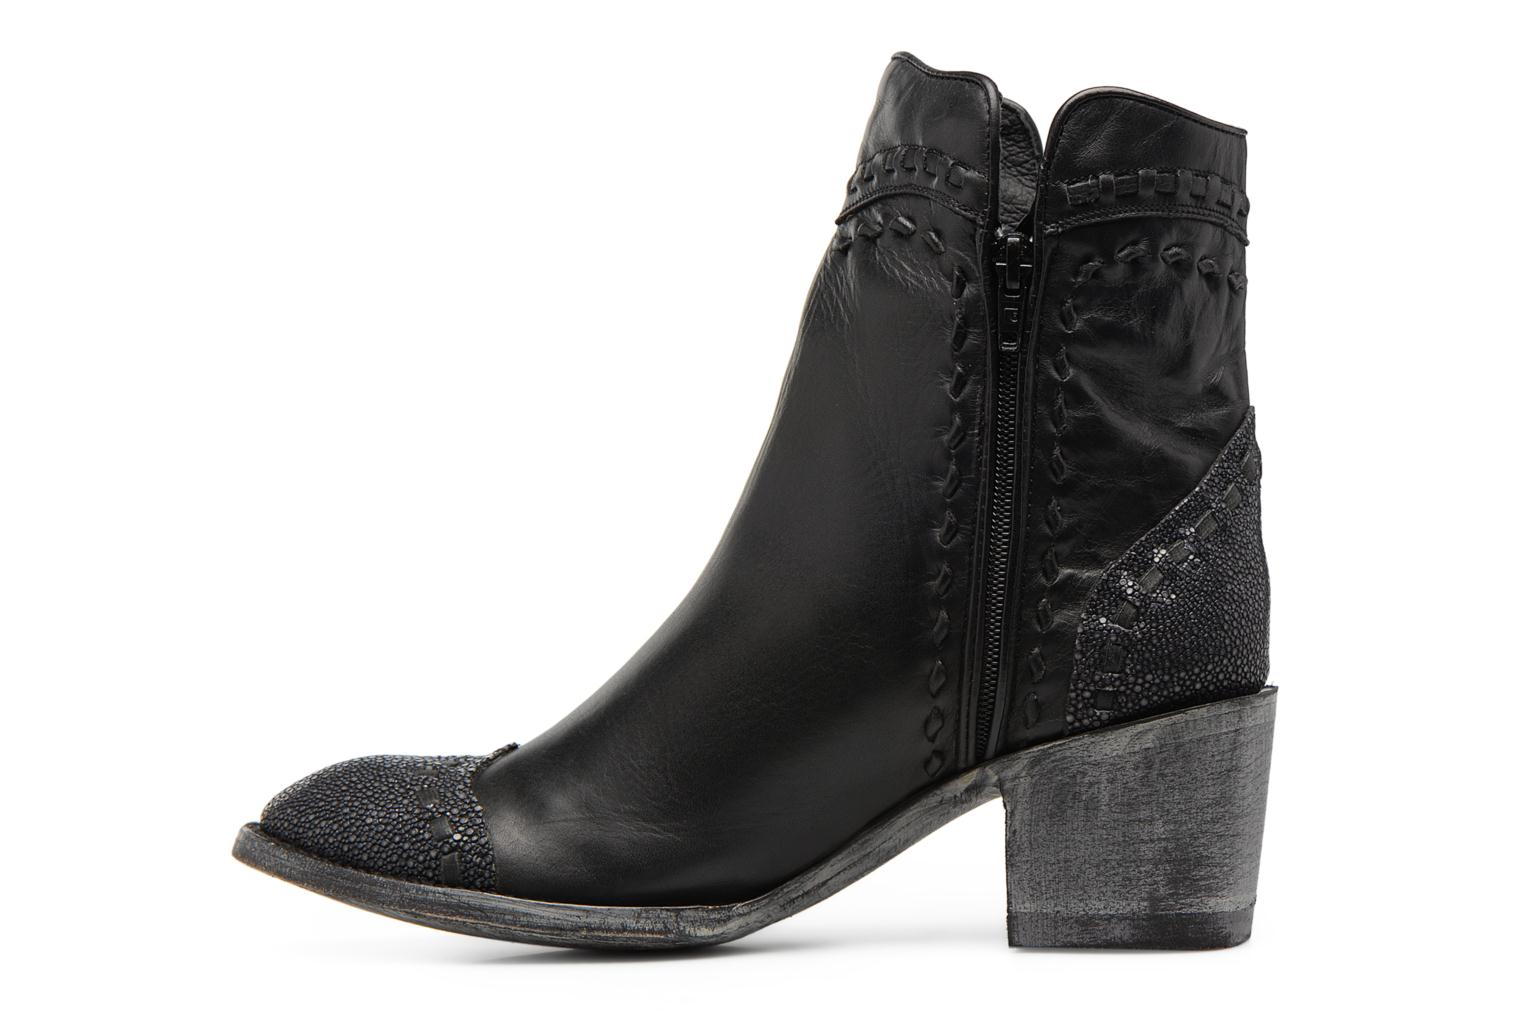 Bottines et boots Mexicana Crithier toe 3 Noir vue face